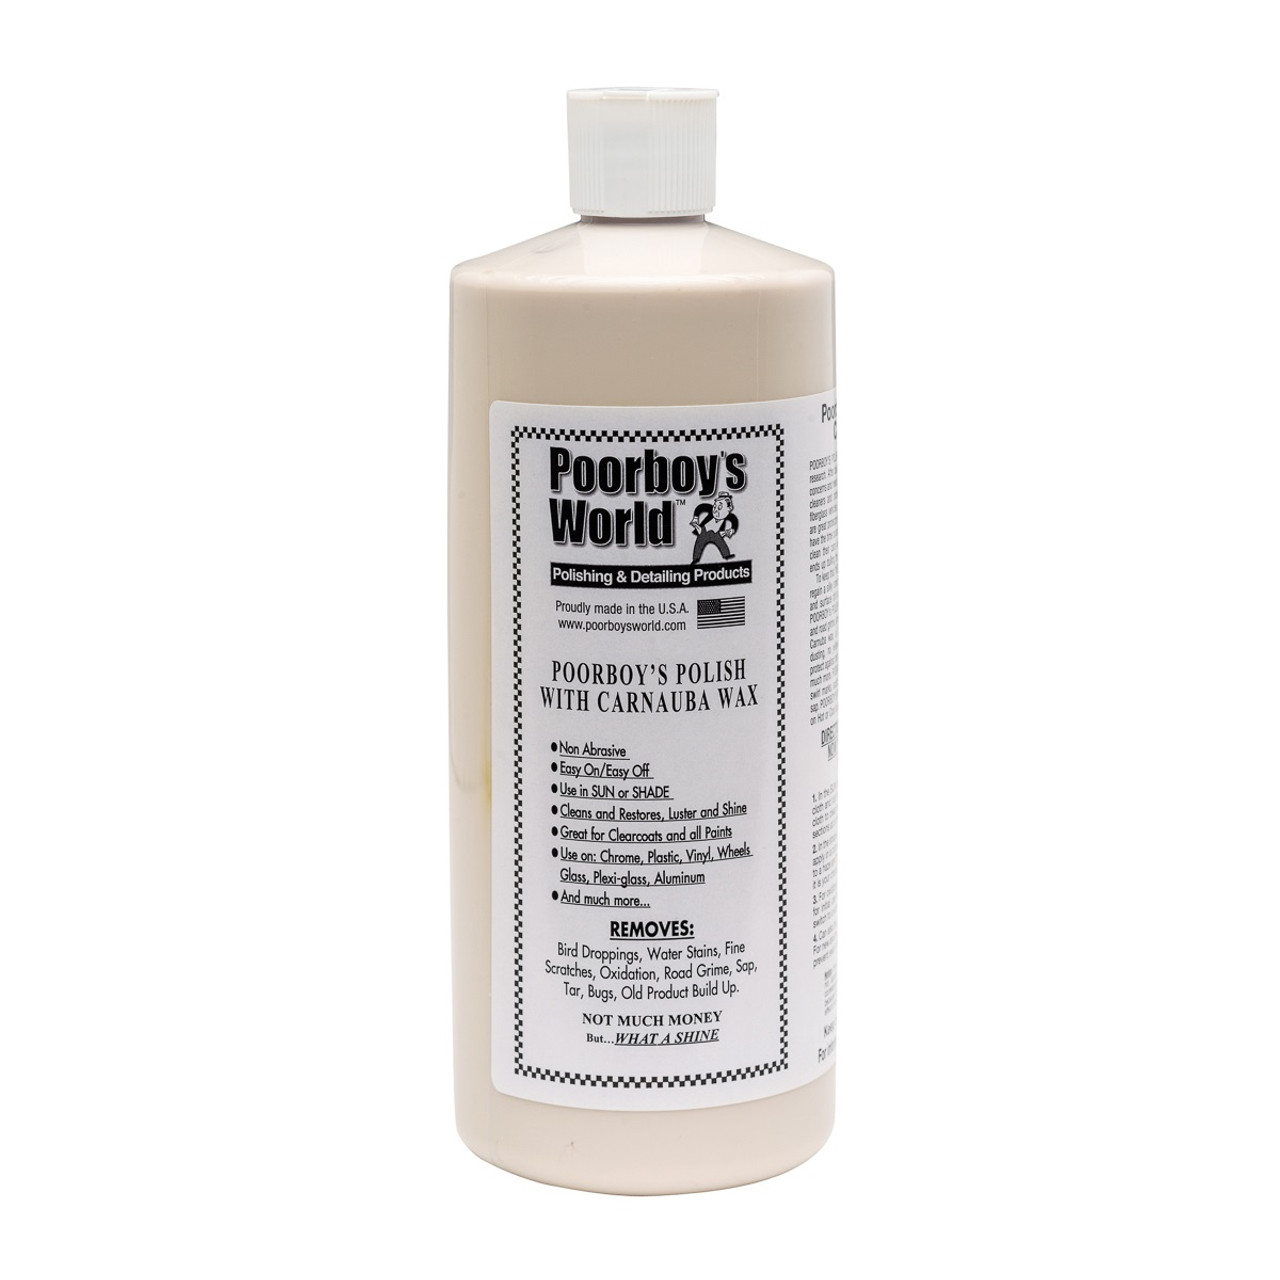 Poorboy's World Polish with Carnauba 32oz